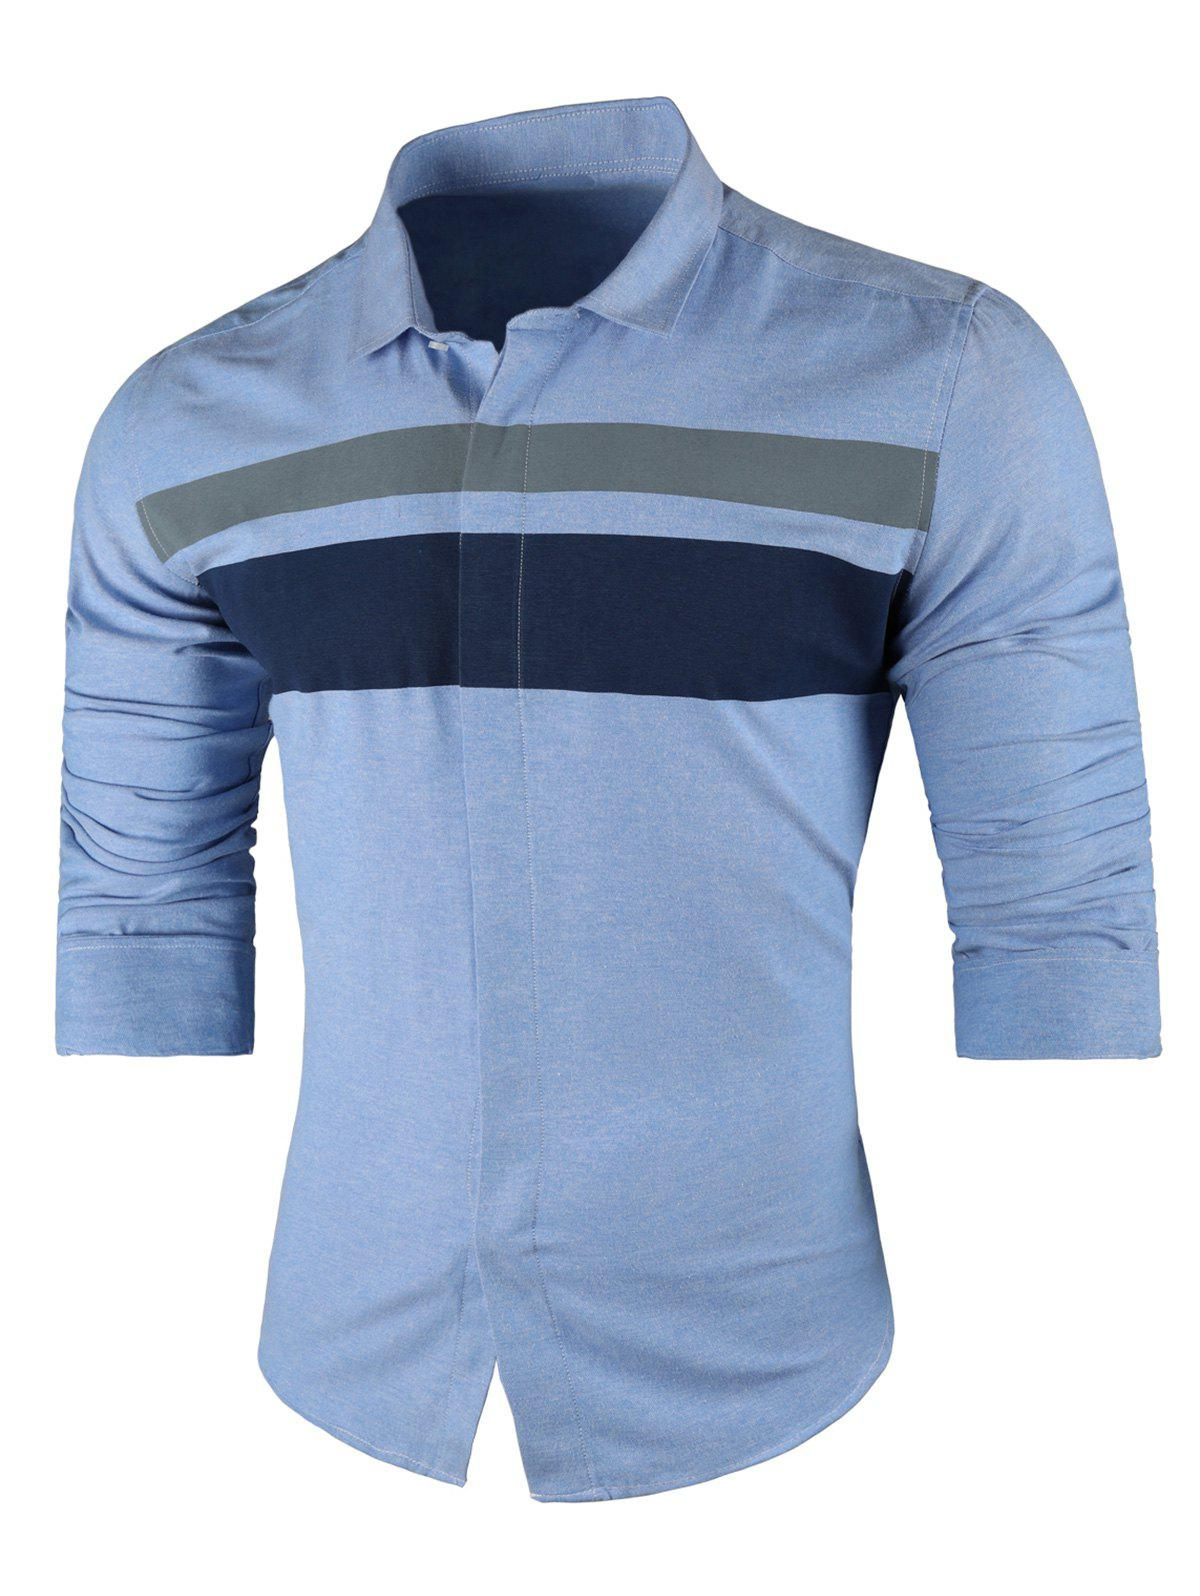 Wide Stripe Turndown Collar Long Sleeve Shirt - LIGHT BLUE L